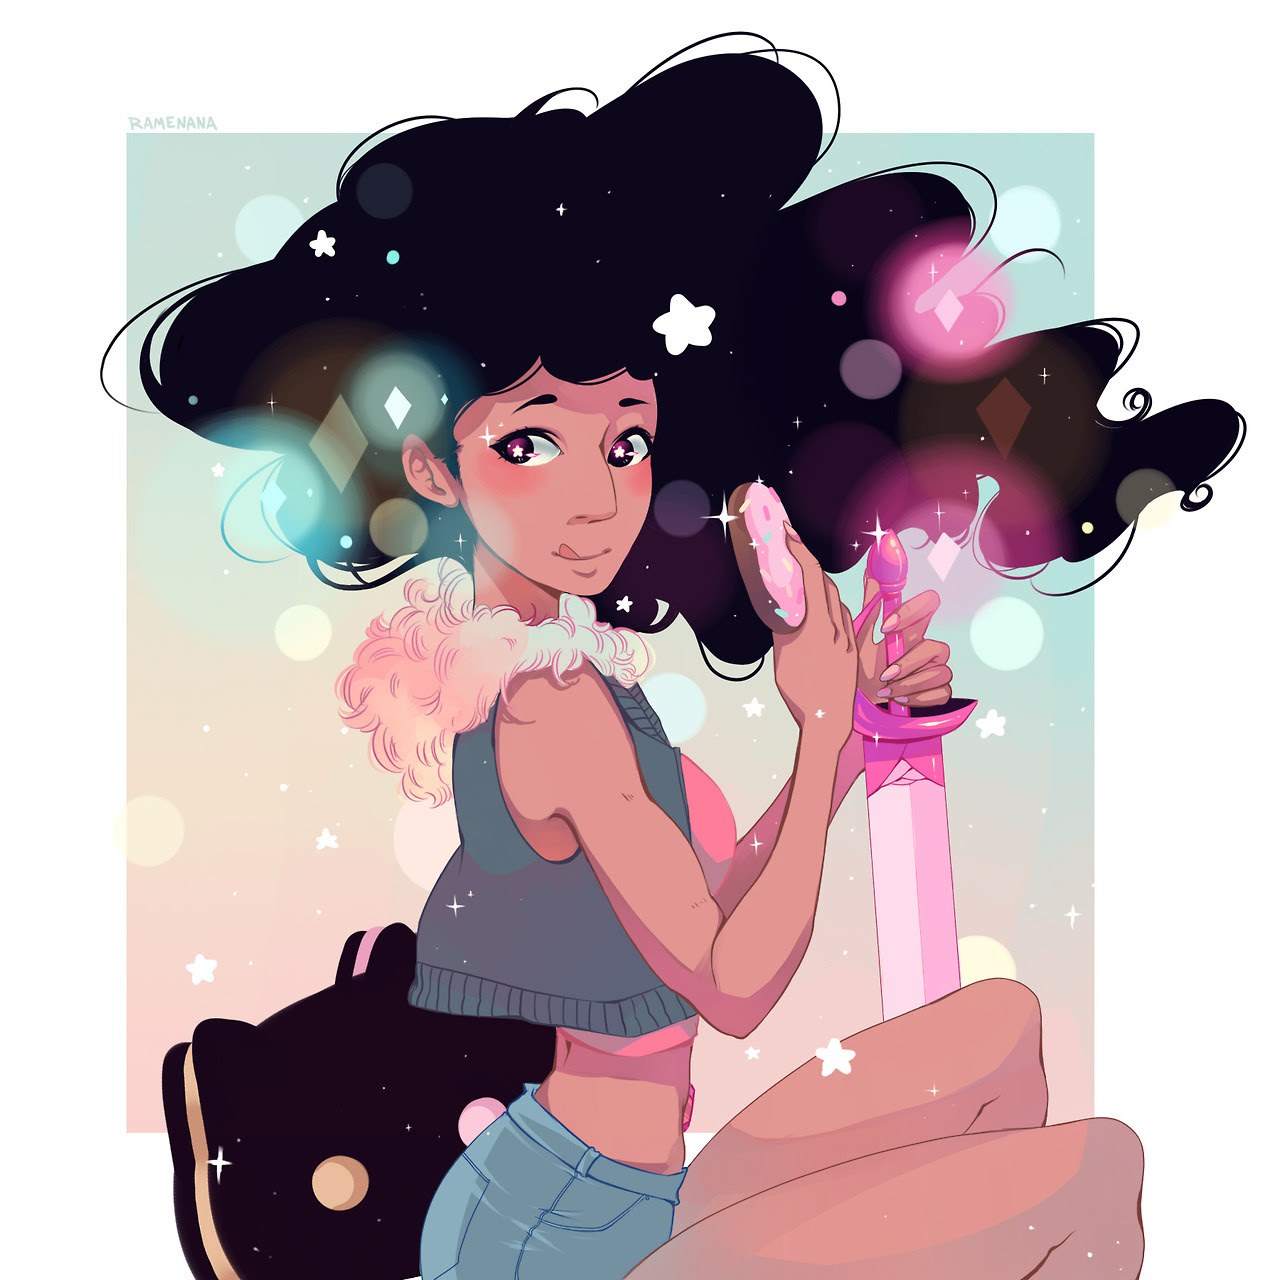 Stevonnie print finished! I ended up changing so much from the original but I hope you guys still like it!